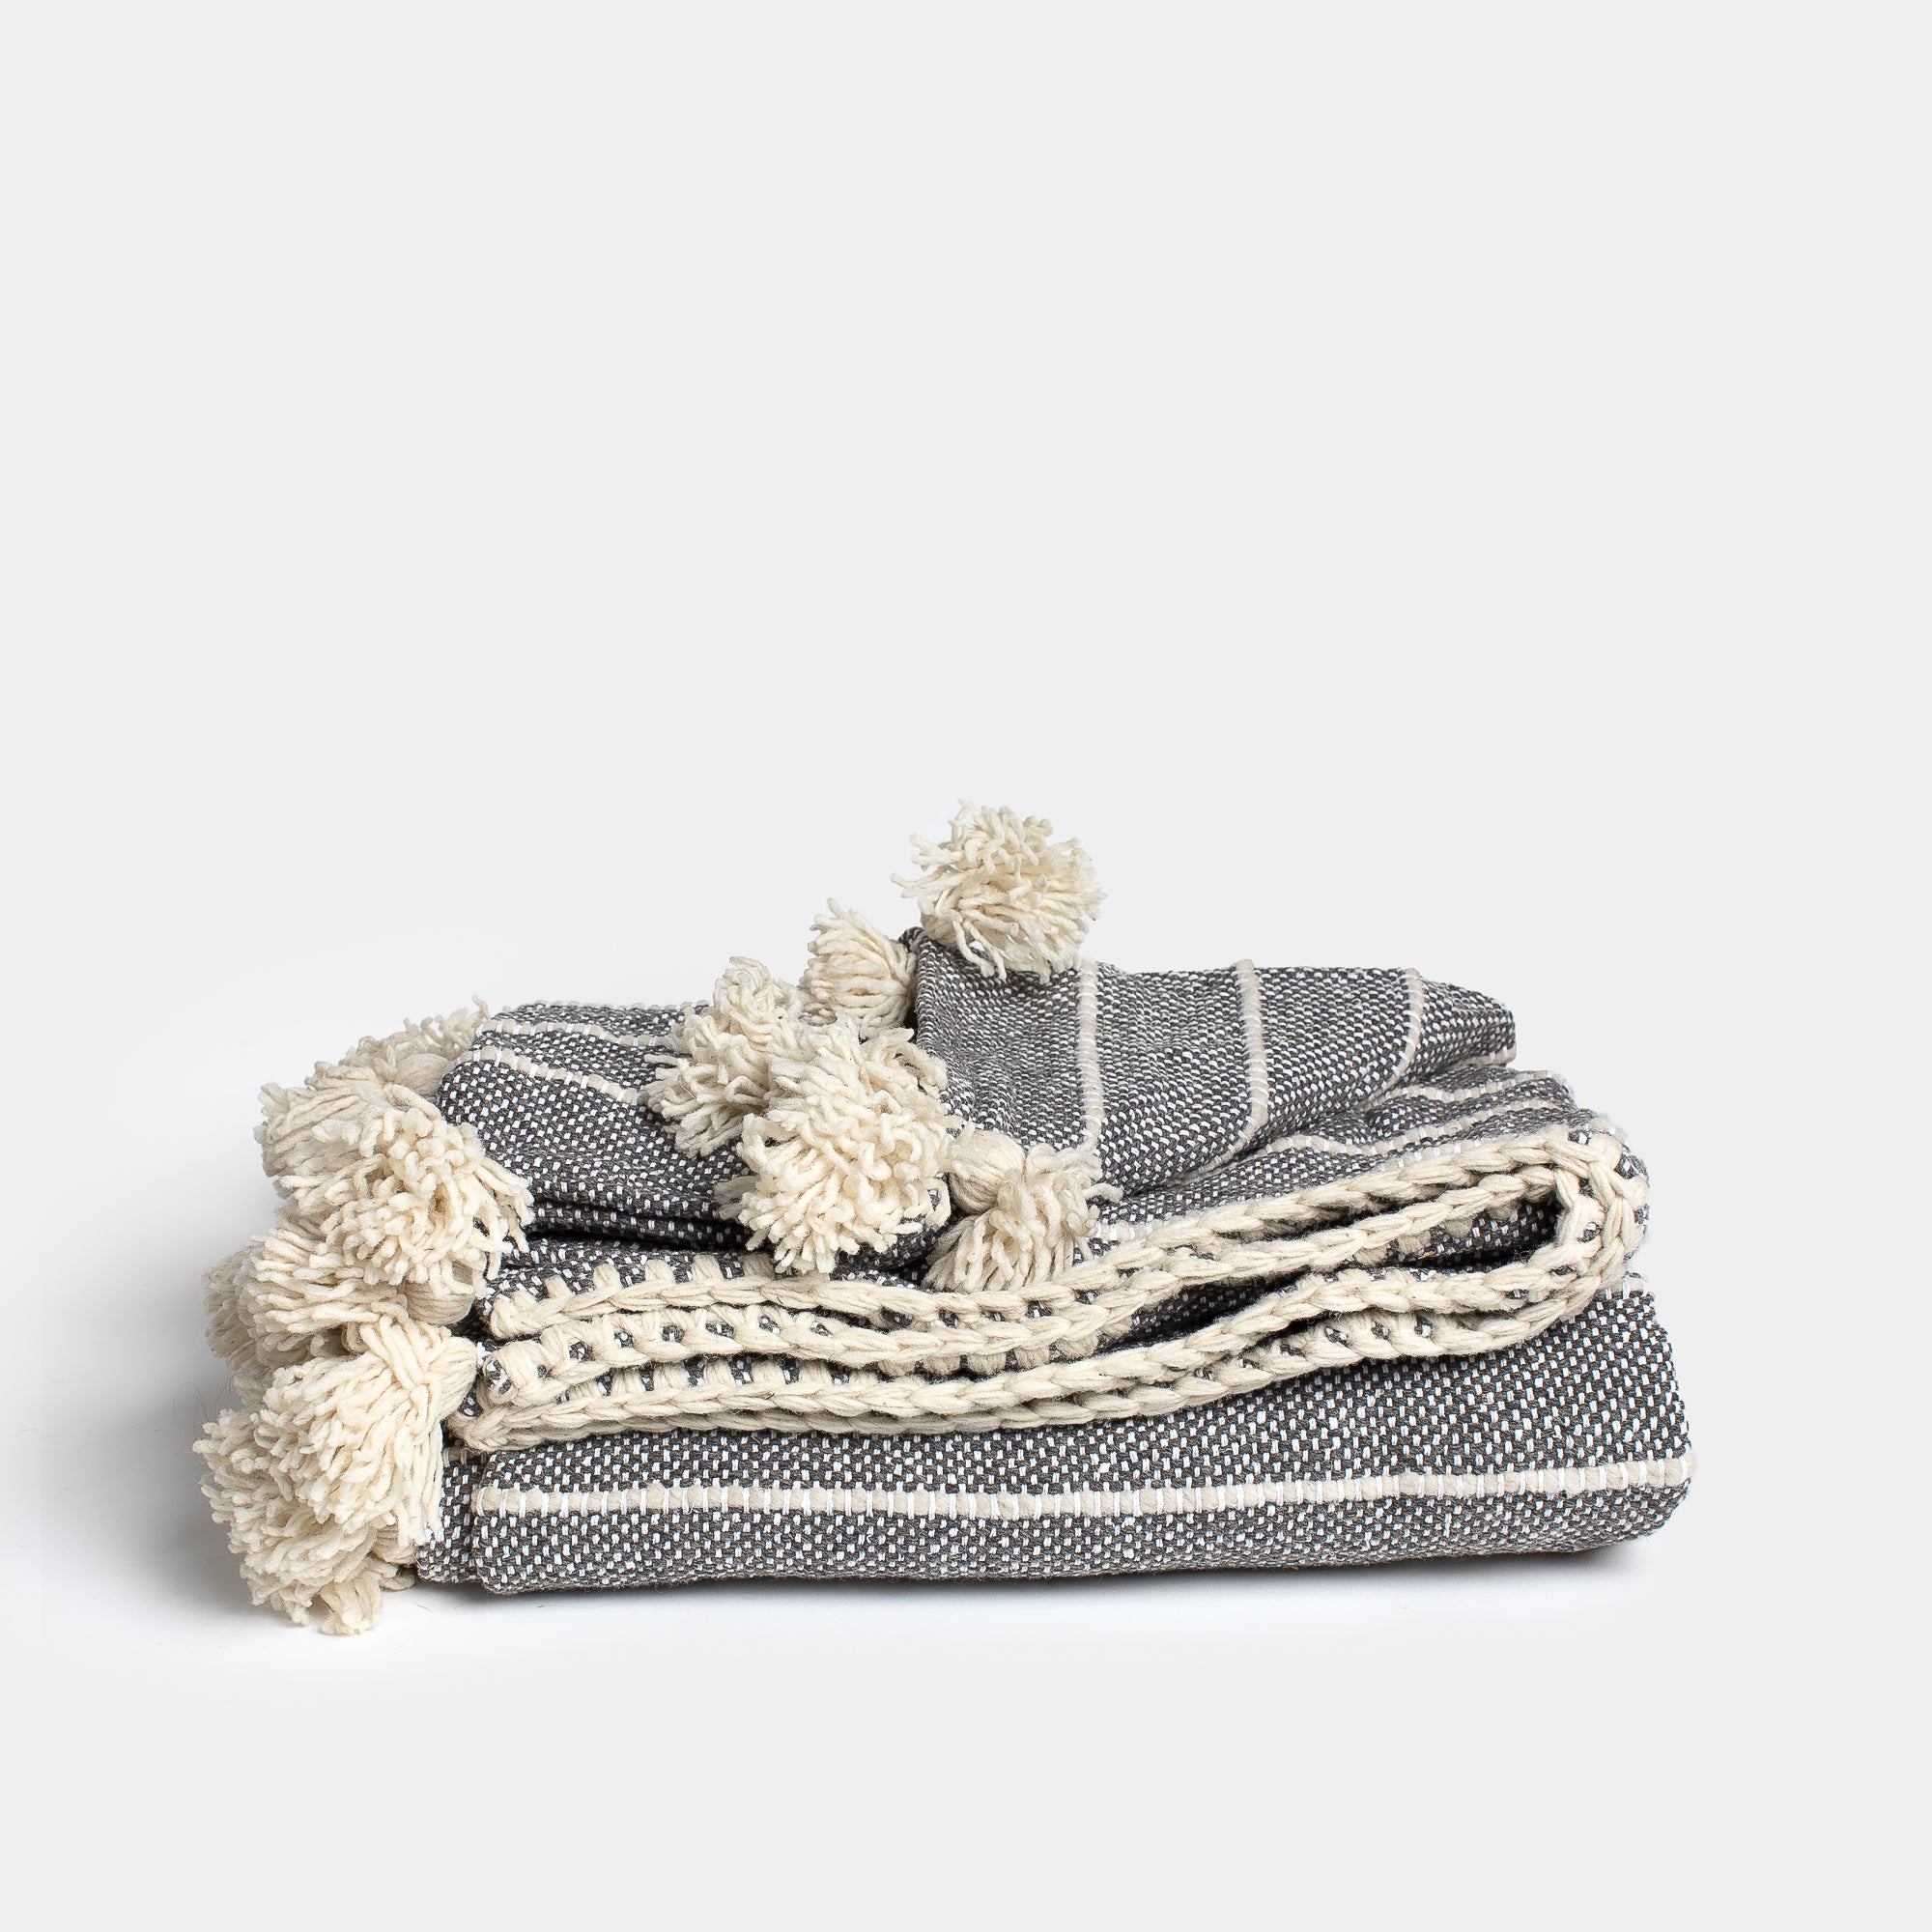 Wool Blanket Grey & White Stripes With Tassels